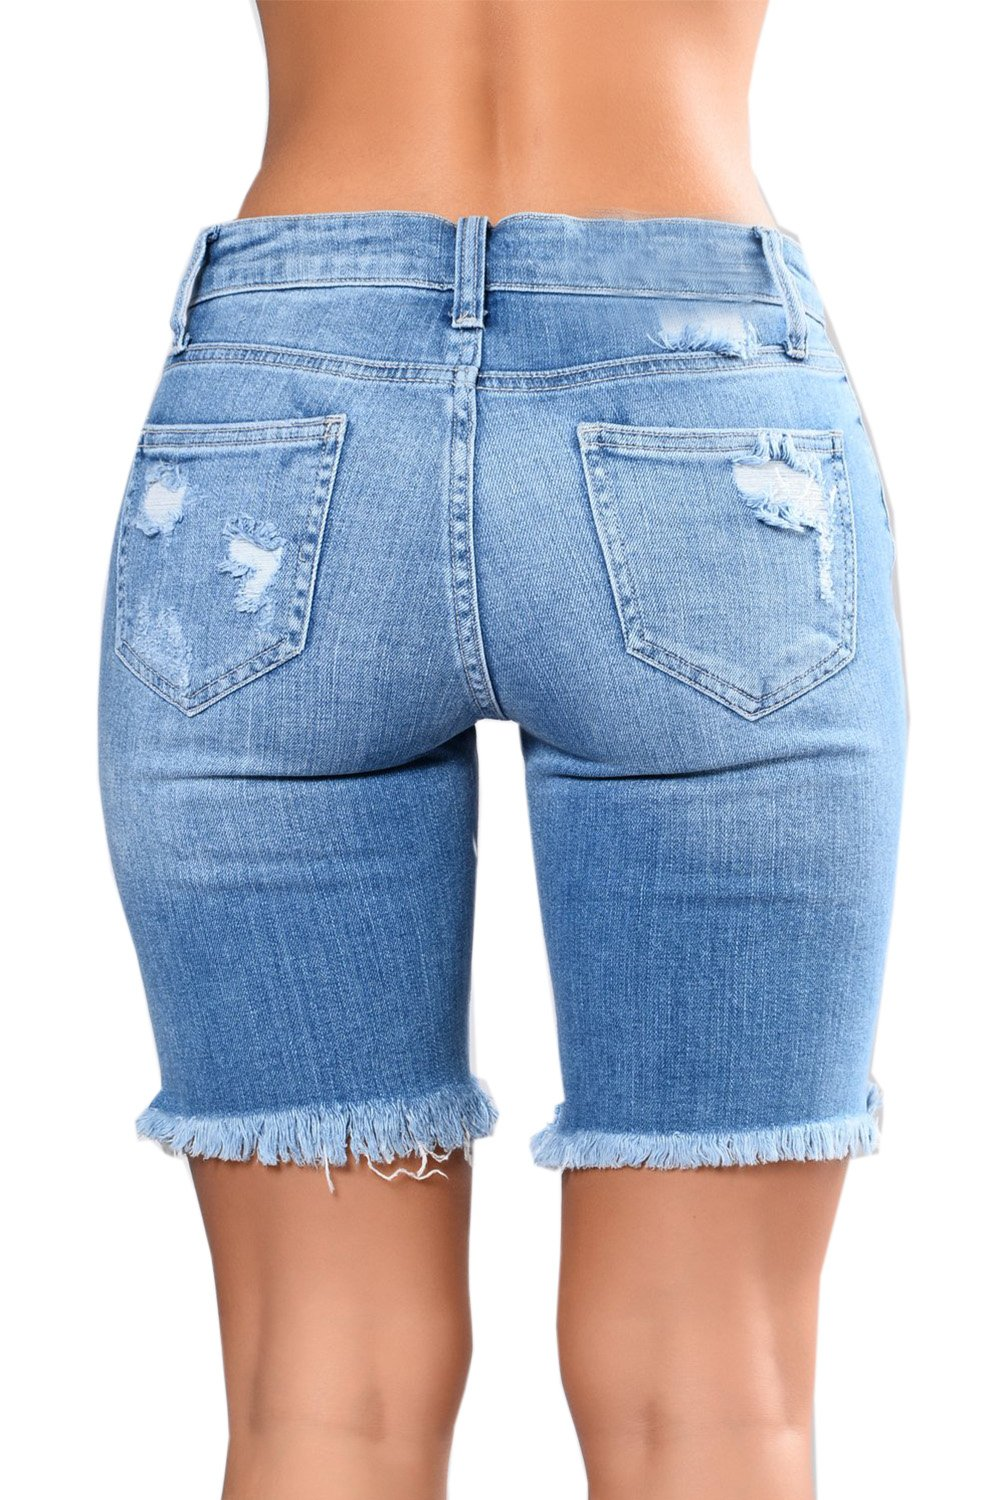 Chellysun Women Ripped Hole Distressed Washed Hot Shorts Denim Jeans by Chellysun (Image #3)